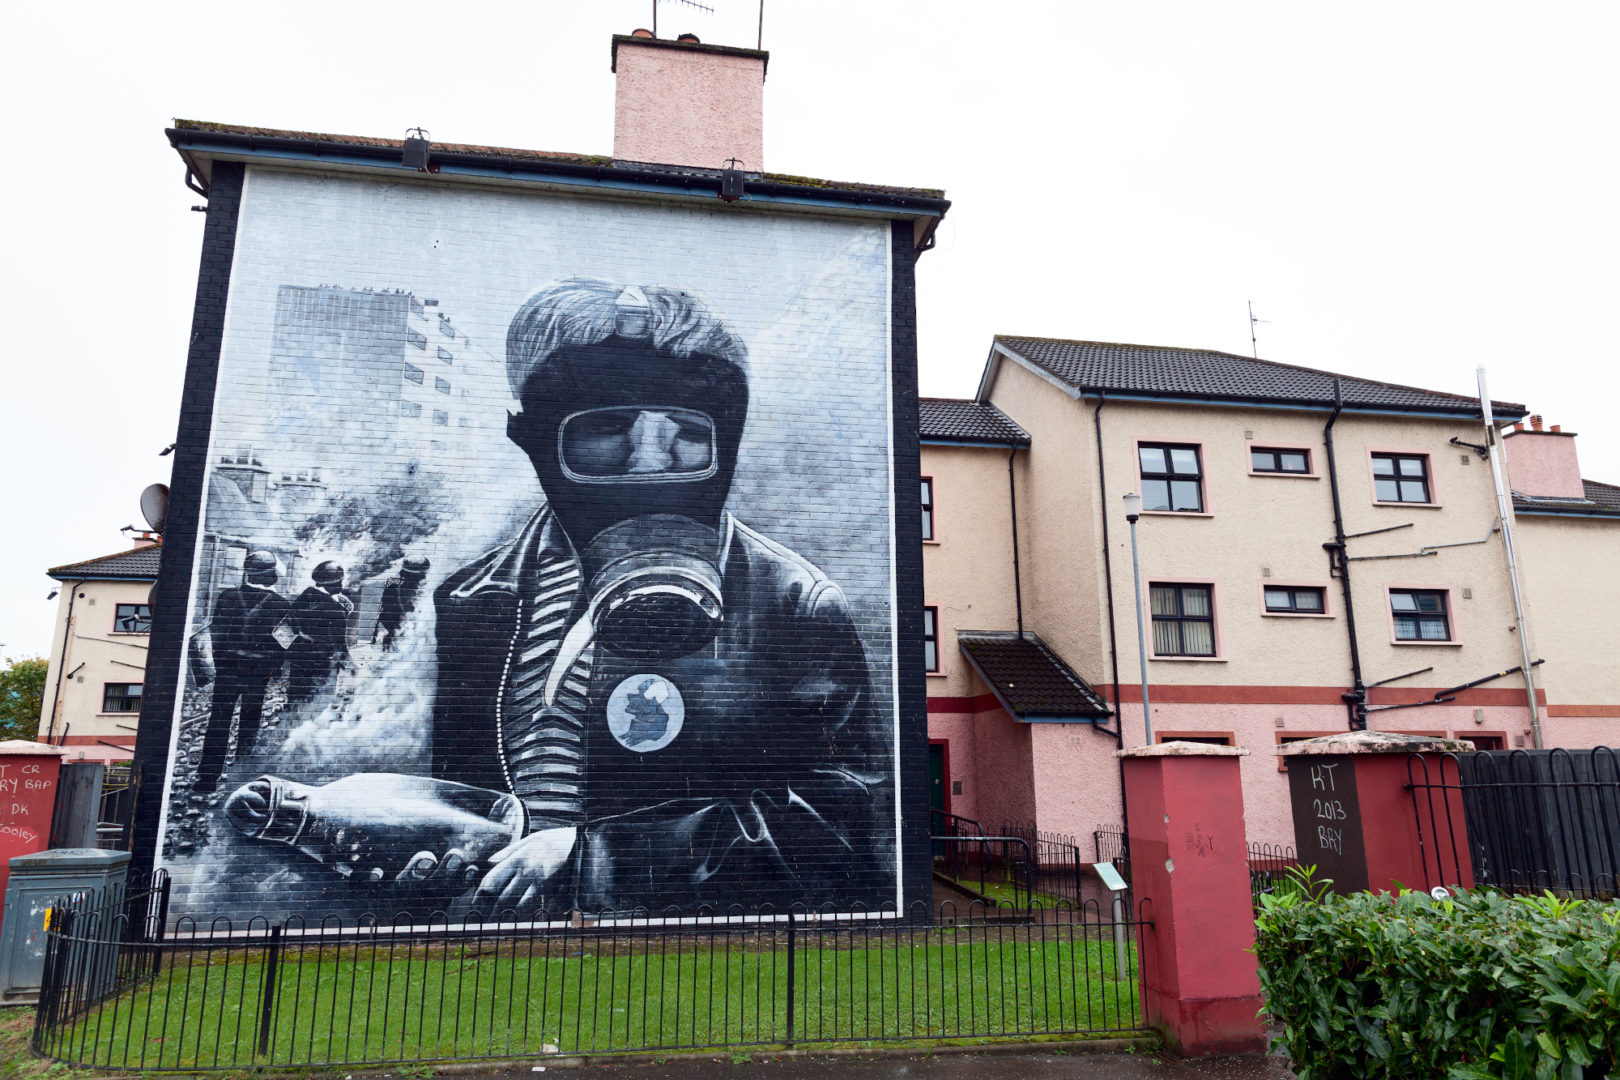 The civil resistance campaign in Northern Ireland